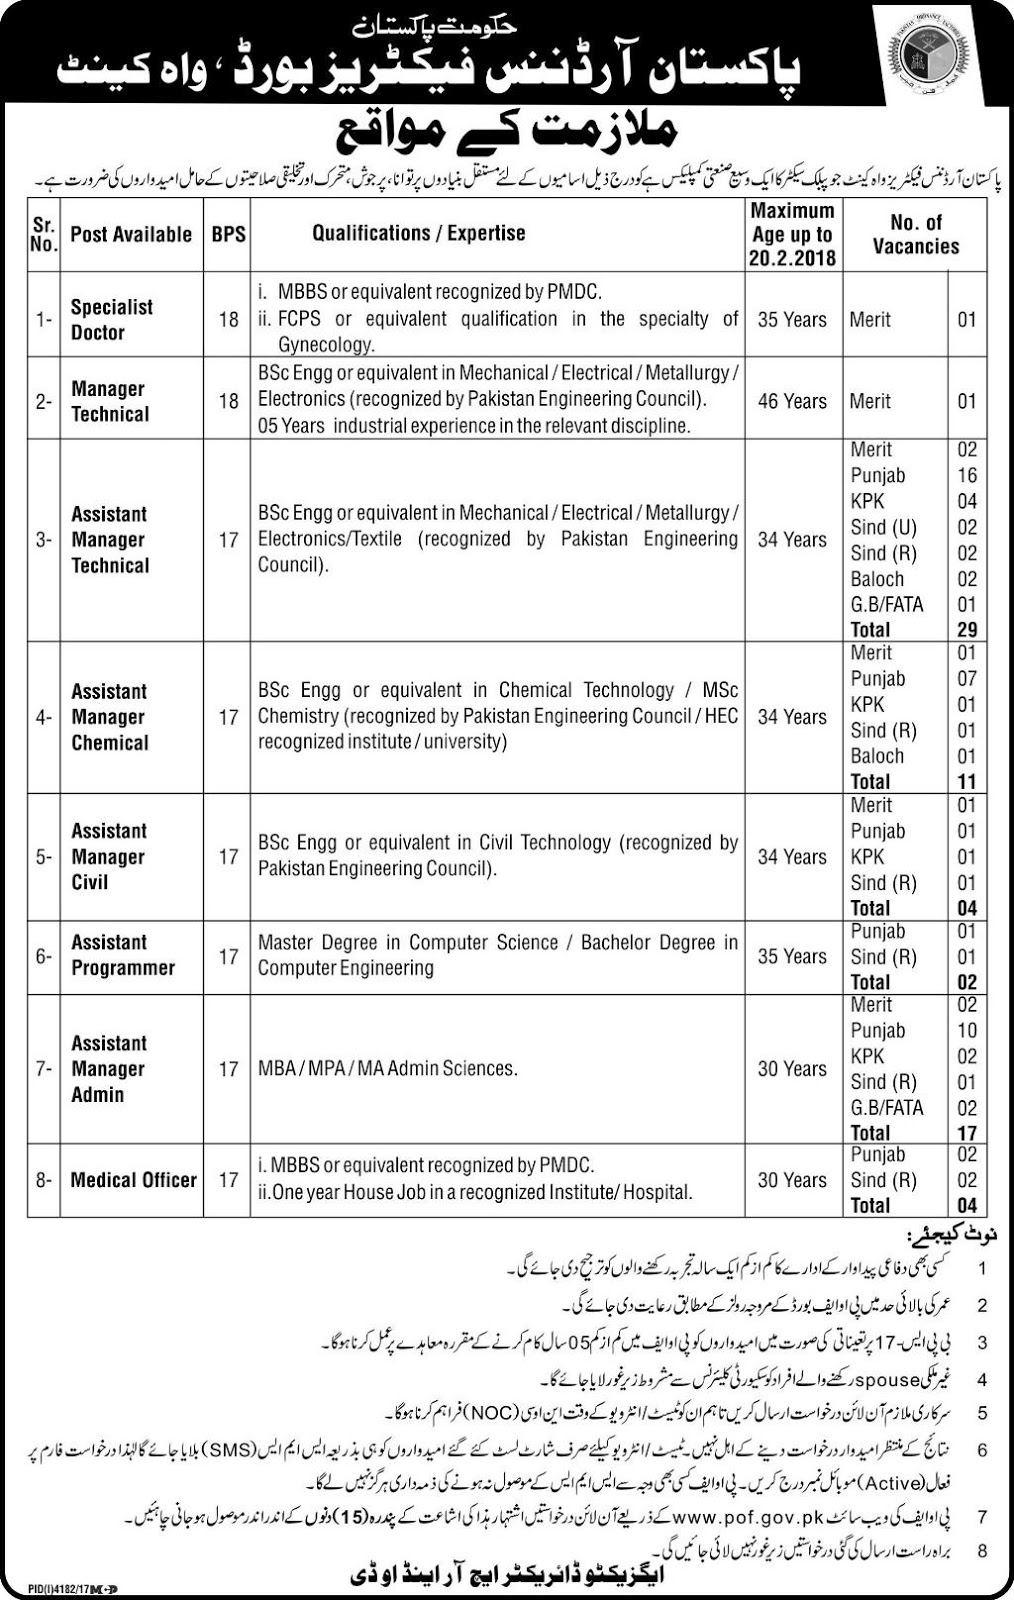 Pakistan Ordnance Factories Wah Cantt jobs Feb 2018